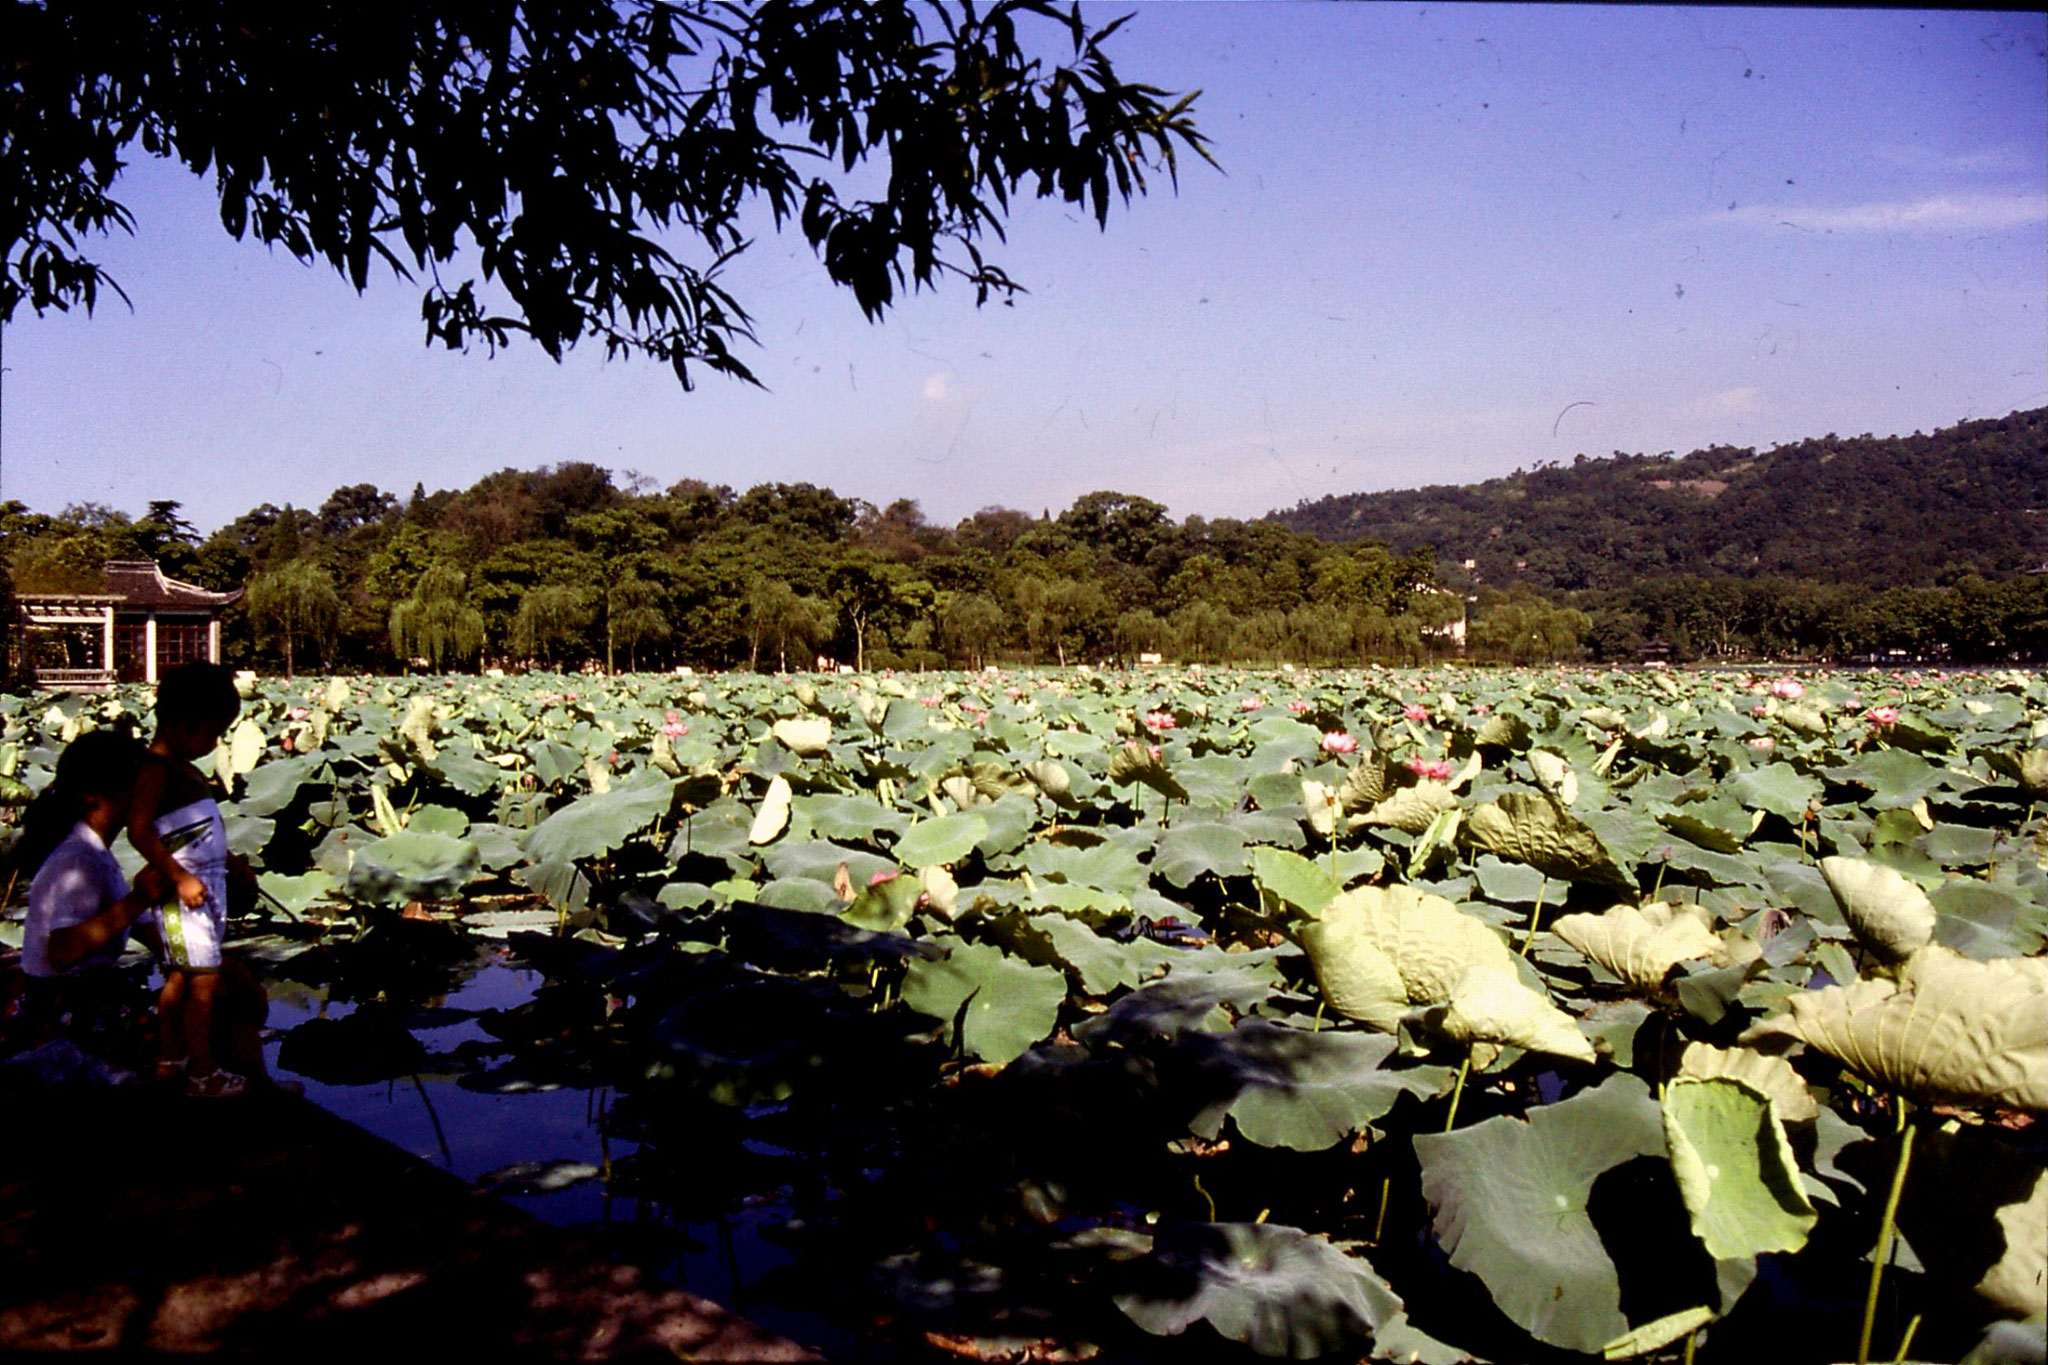 16/7/1989: 26: Hangzhou West Lake lotus leaves